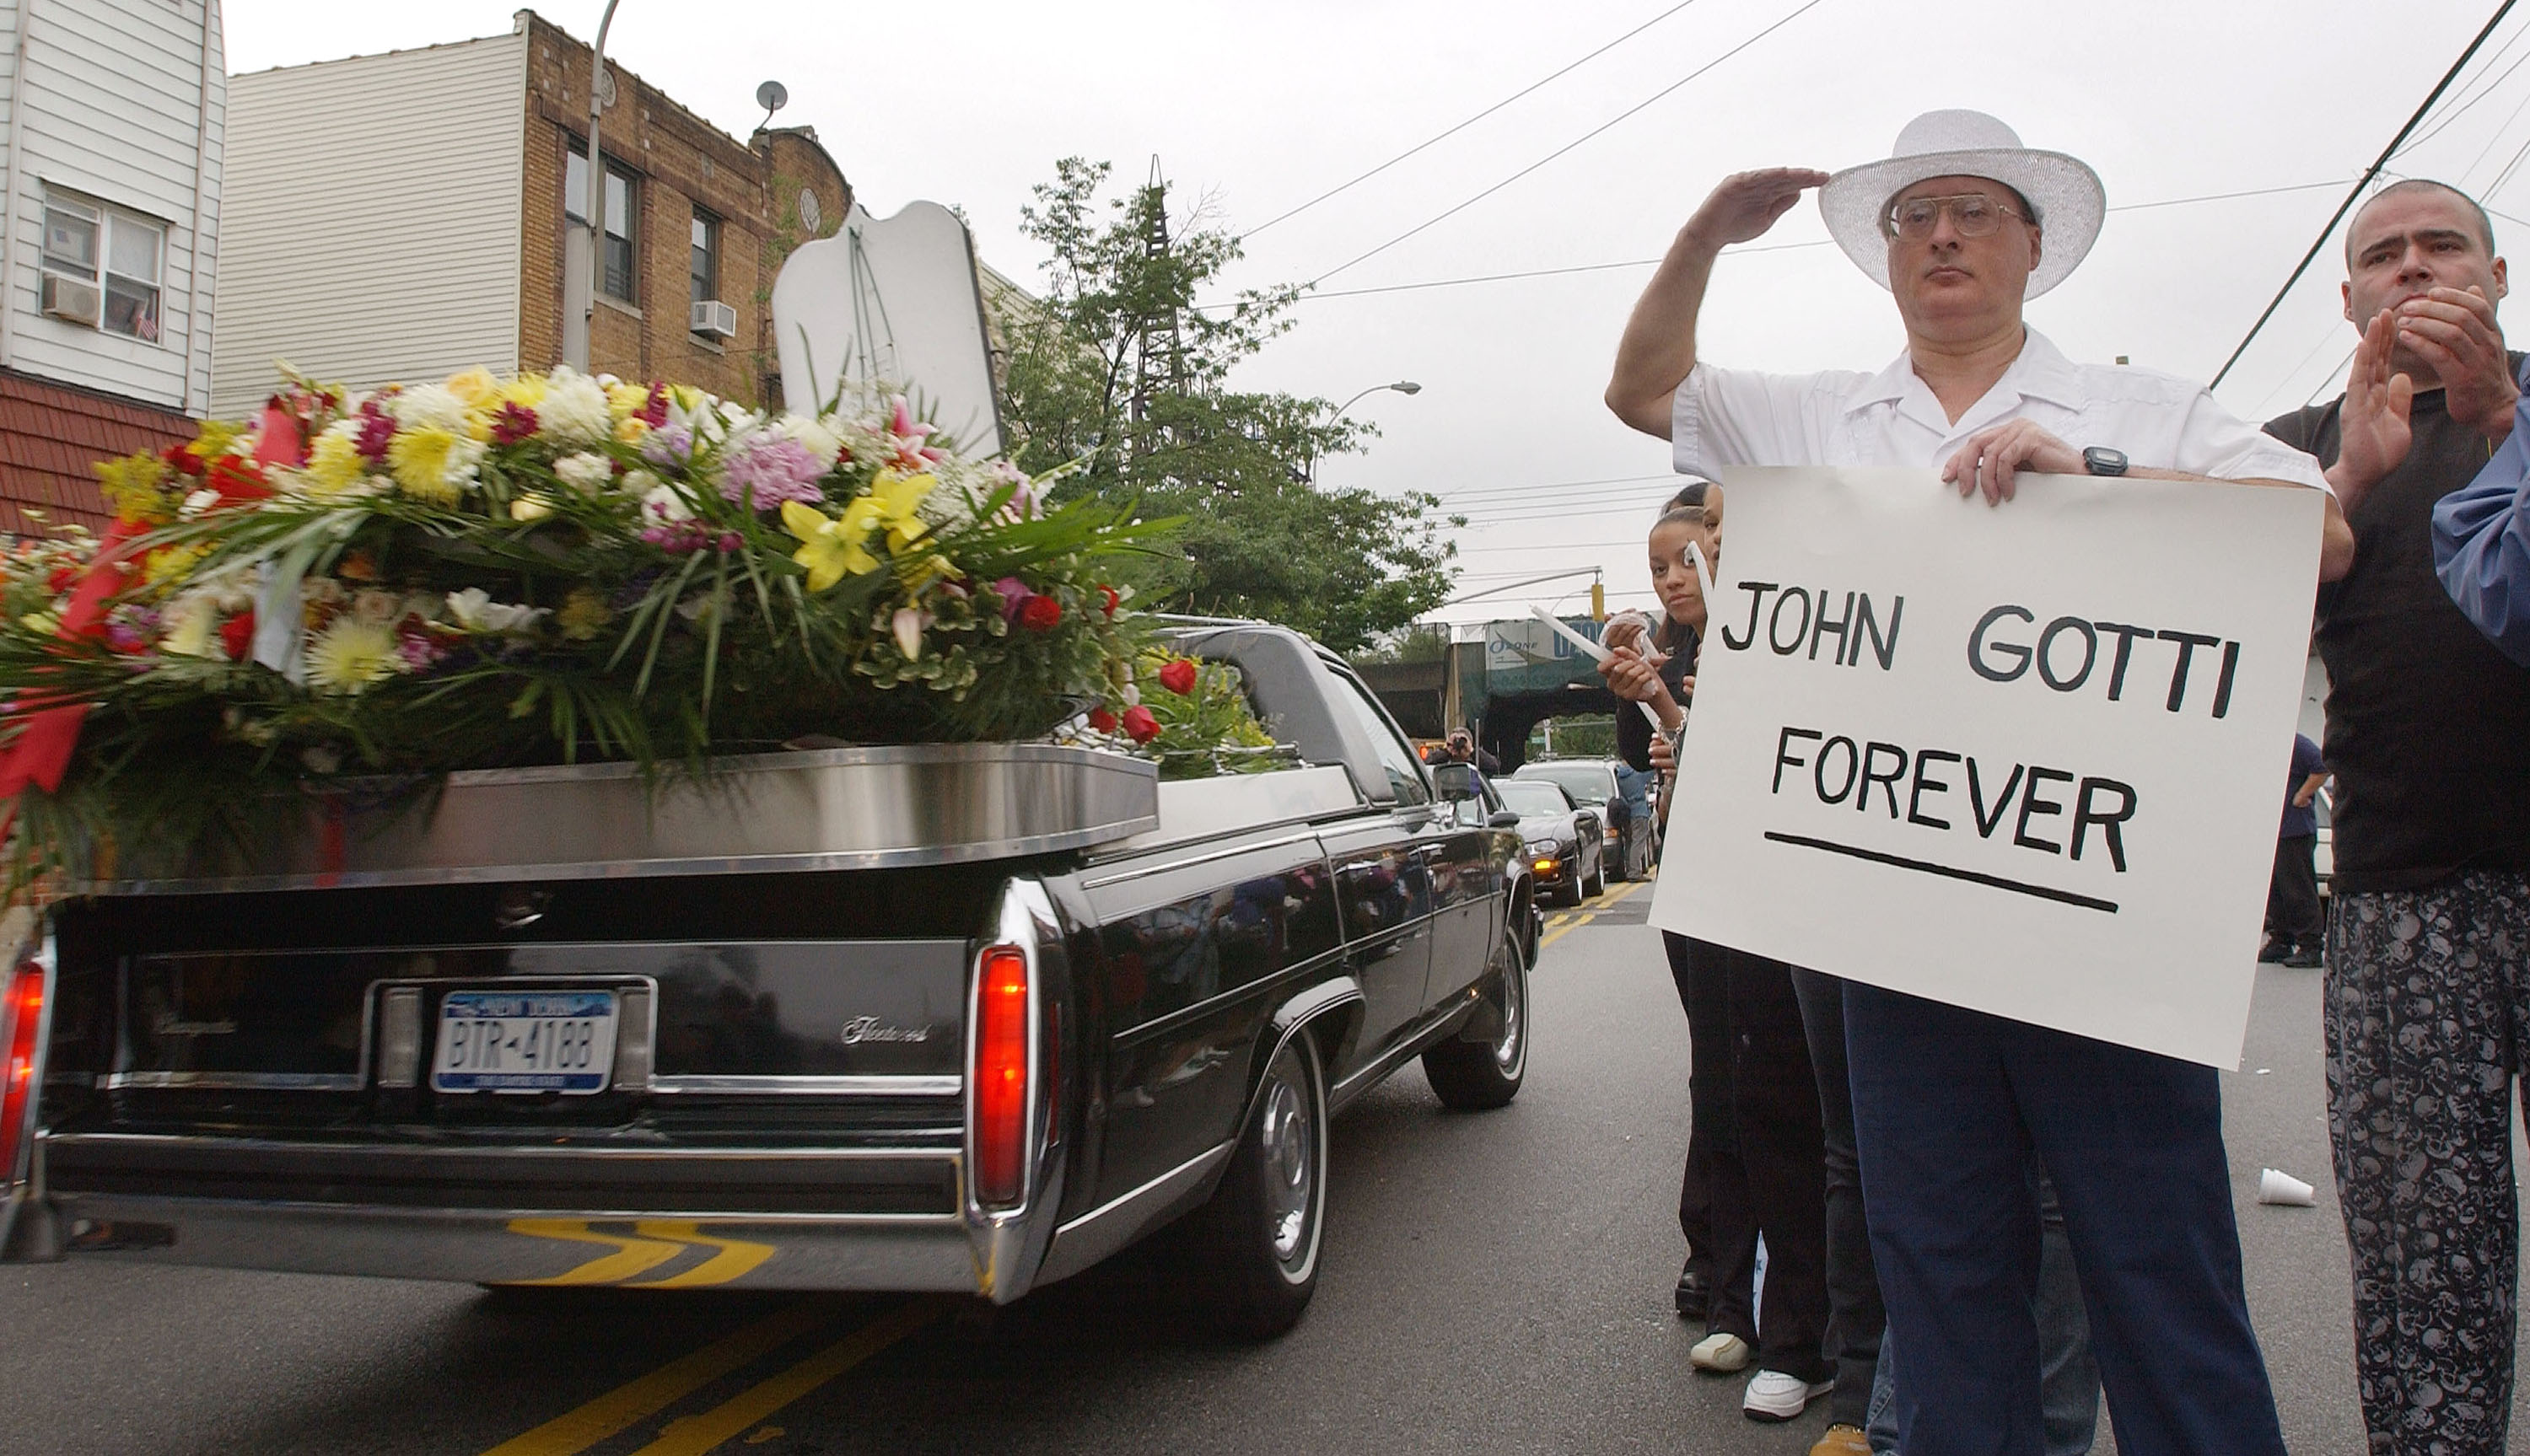 An admirer of legendary crime boss John Gotti salutes and holds a sign which reads,' John Gotti Forever' as Gotti's funeral procession passes by the Bergin Hunt and Fish Club June 15, 2002 in Queens, New York. Gotti, 61, died in a federal prison hospital June 10, 2002 from complications of head and neck cancer. Gotti was laid to rest at St. Johns Cemetery in Queens.